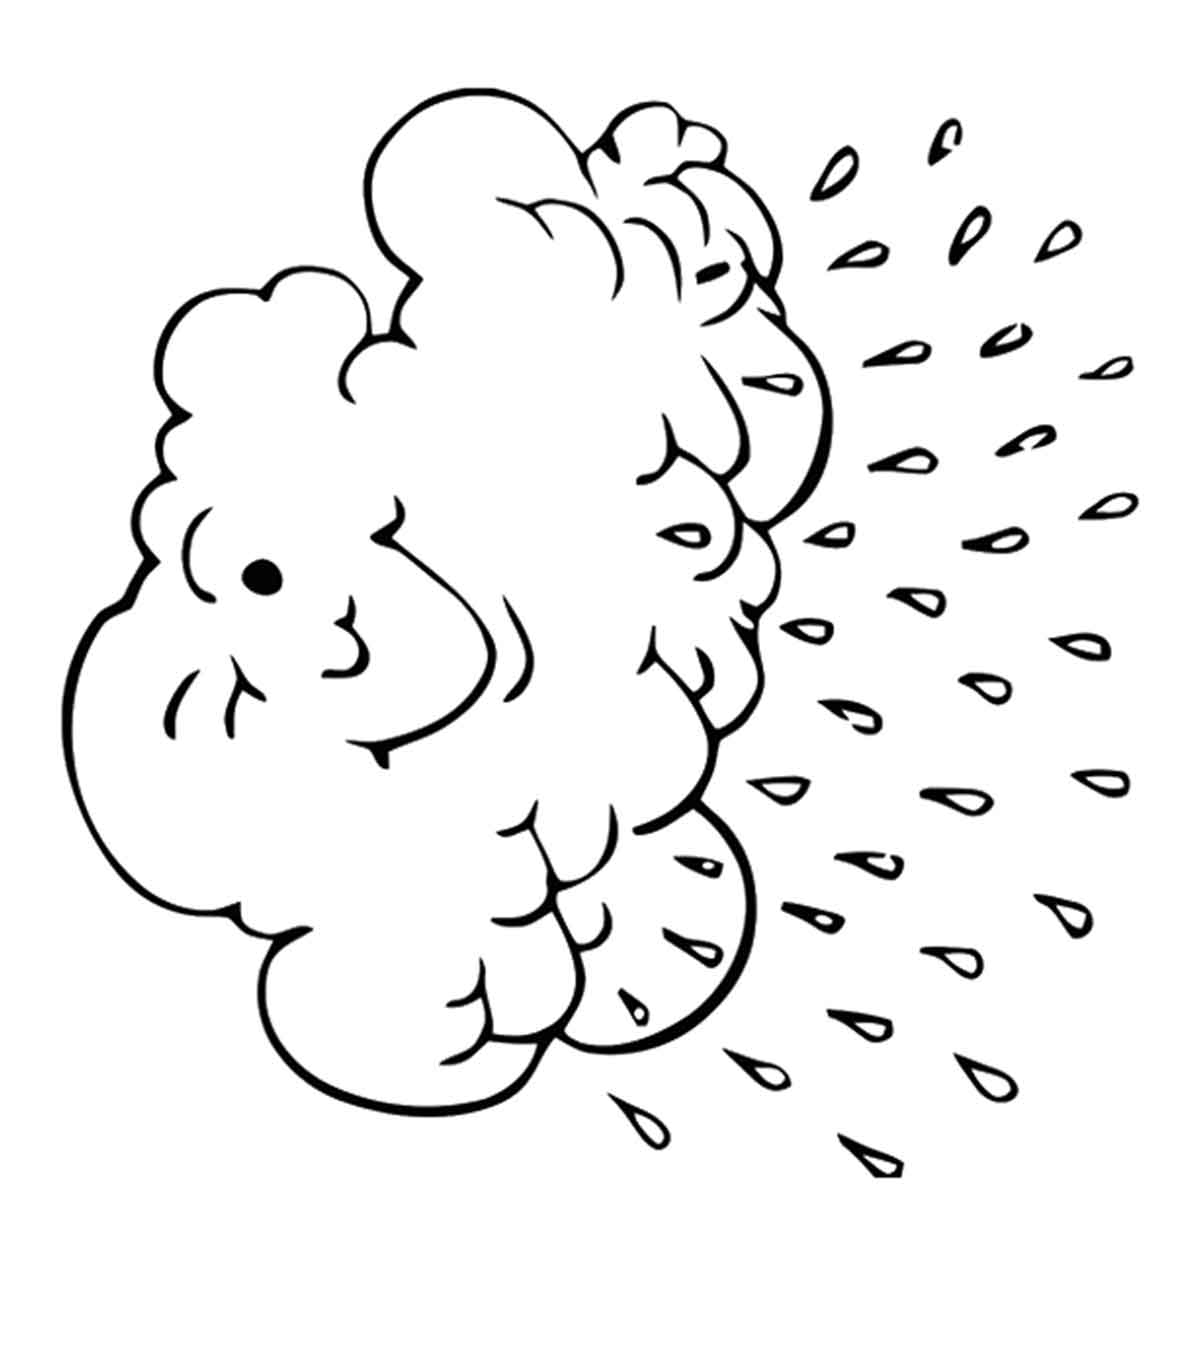 Cloud Coloring Pages - Free Printables - MomJunction